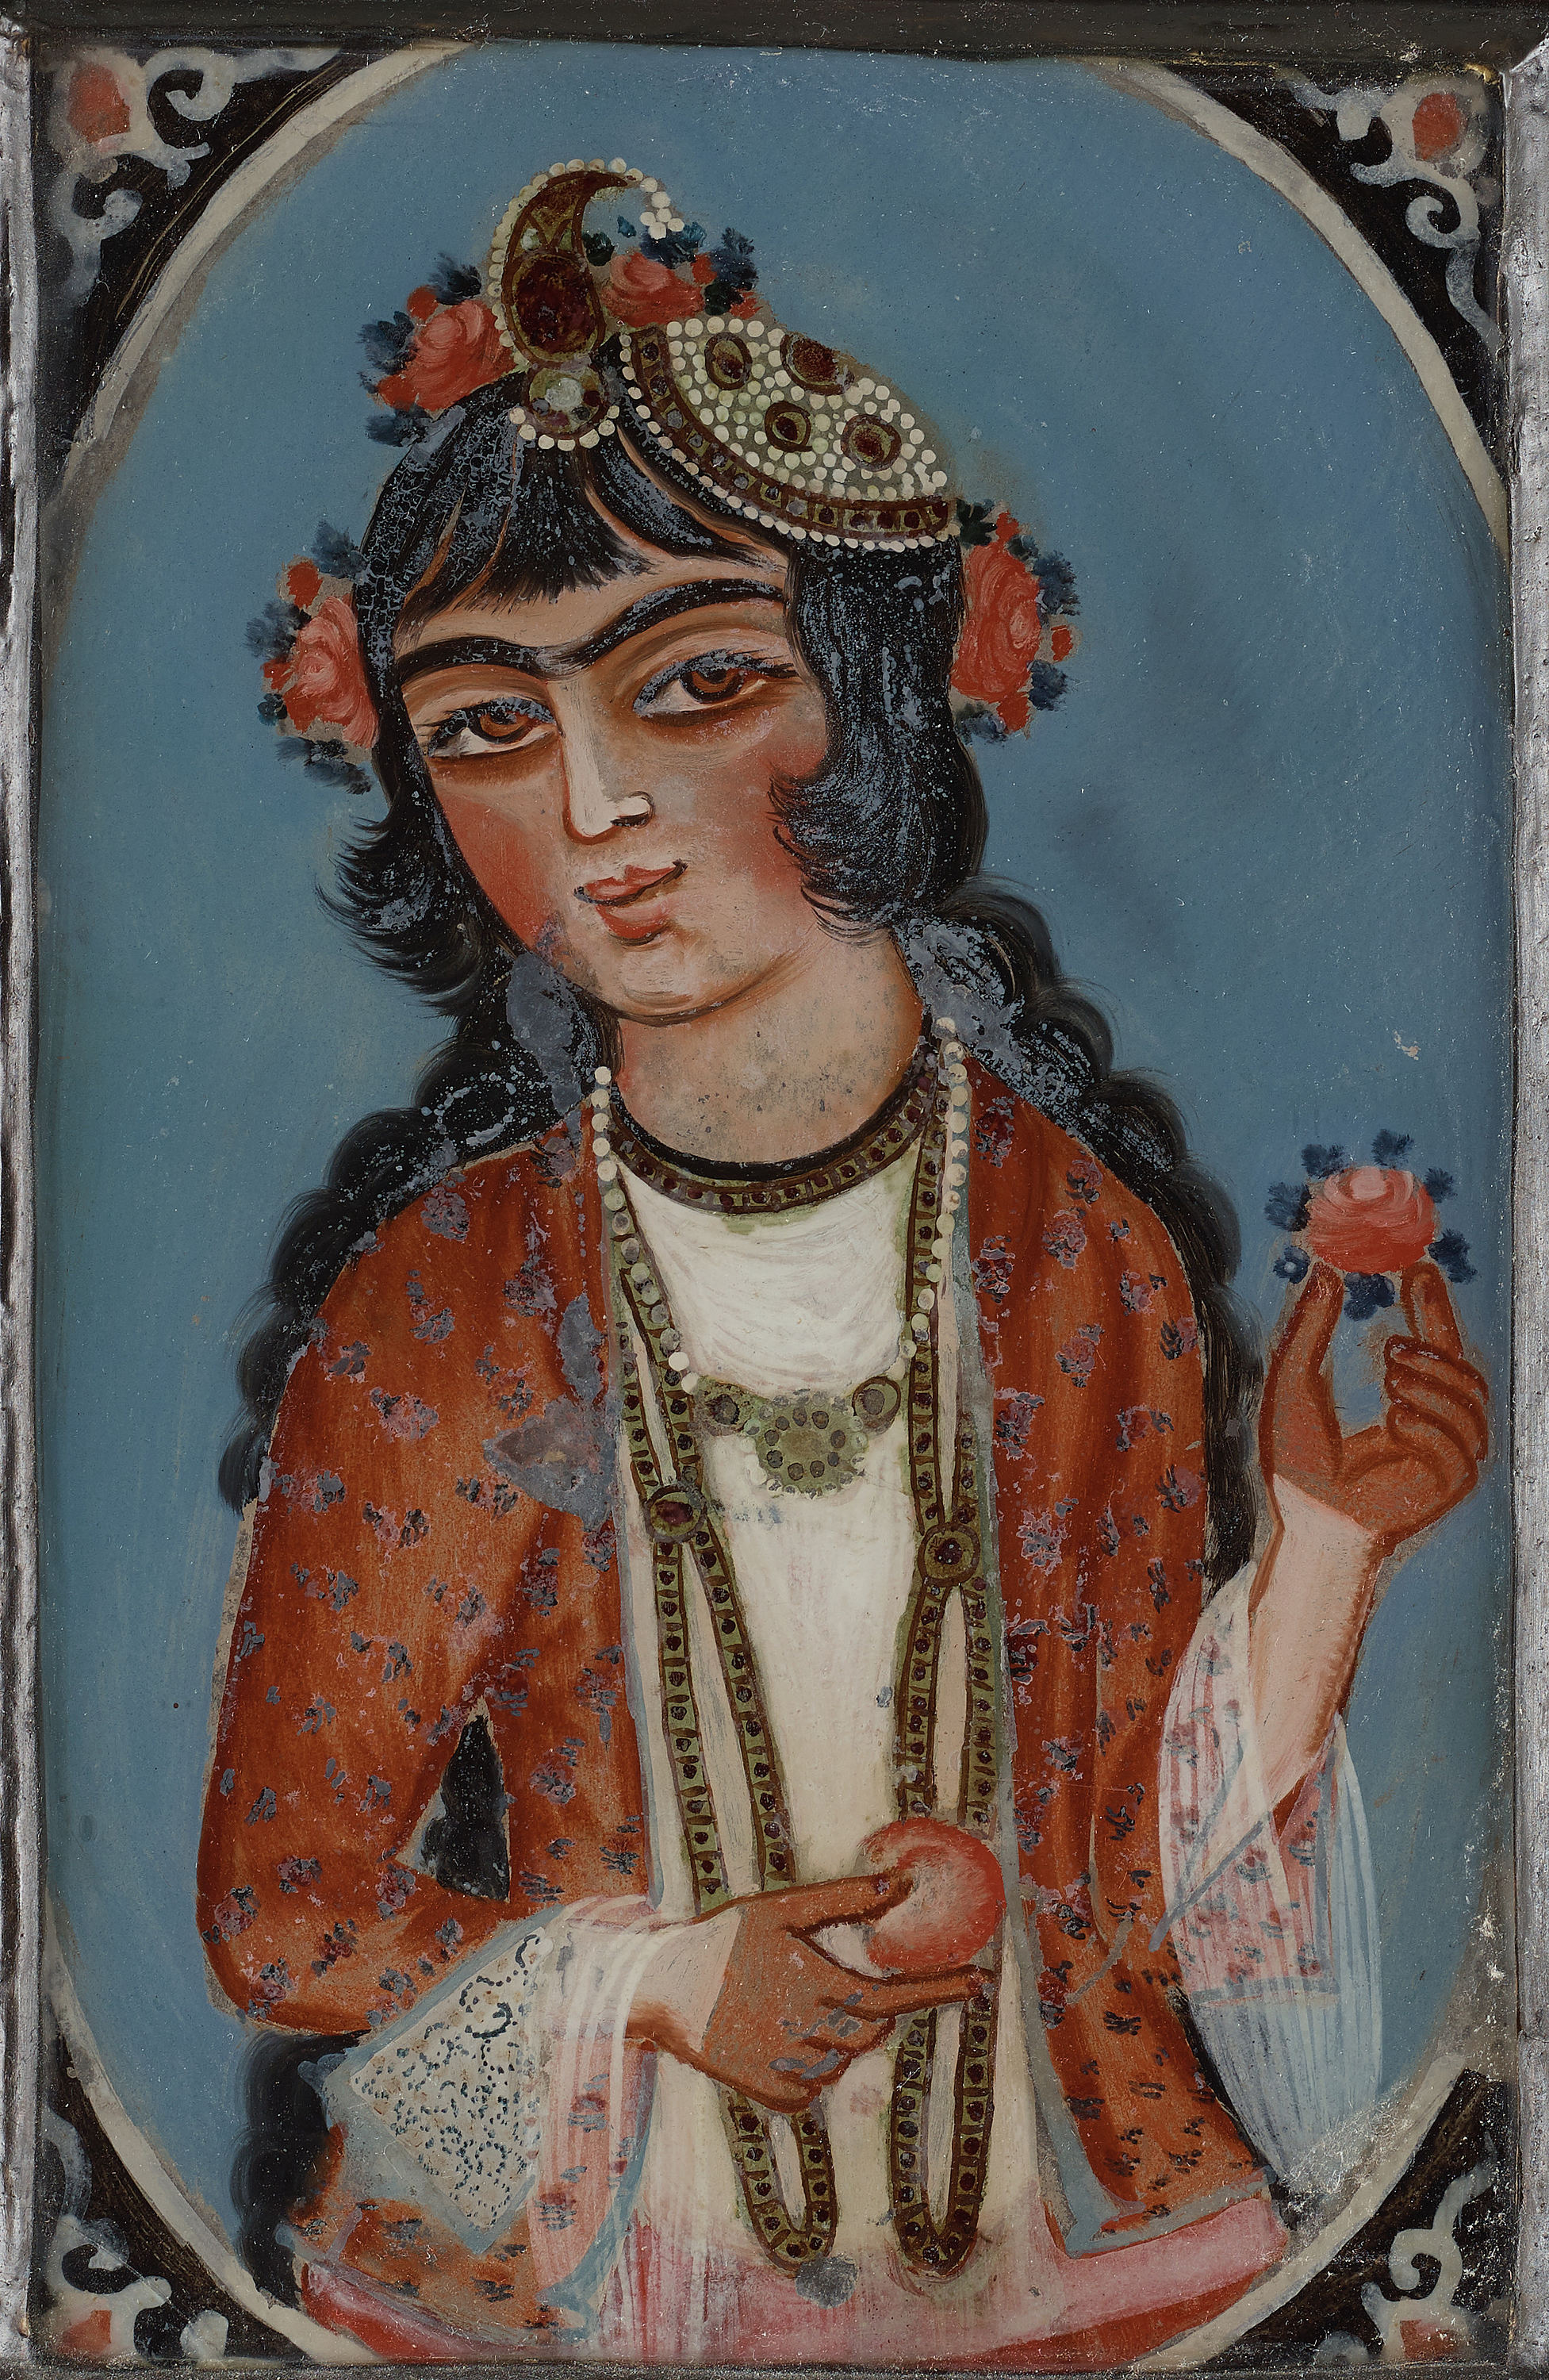 A Persian Glass Painting From The Qajar Dynasty Bukowskis